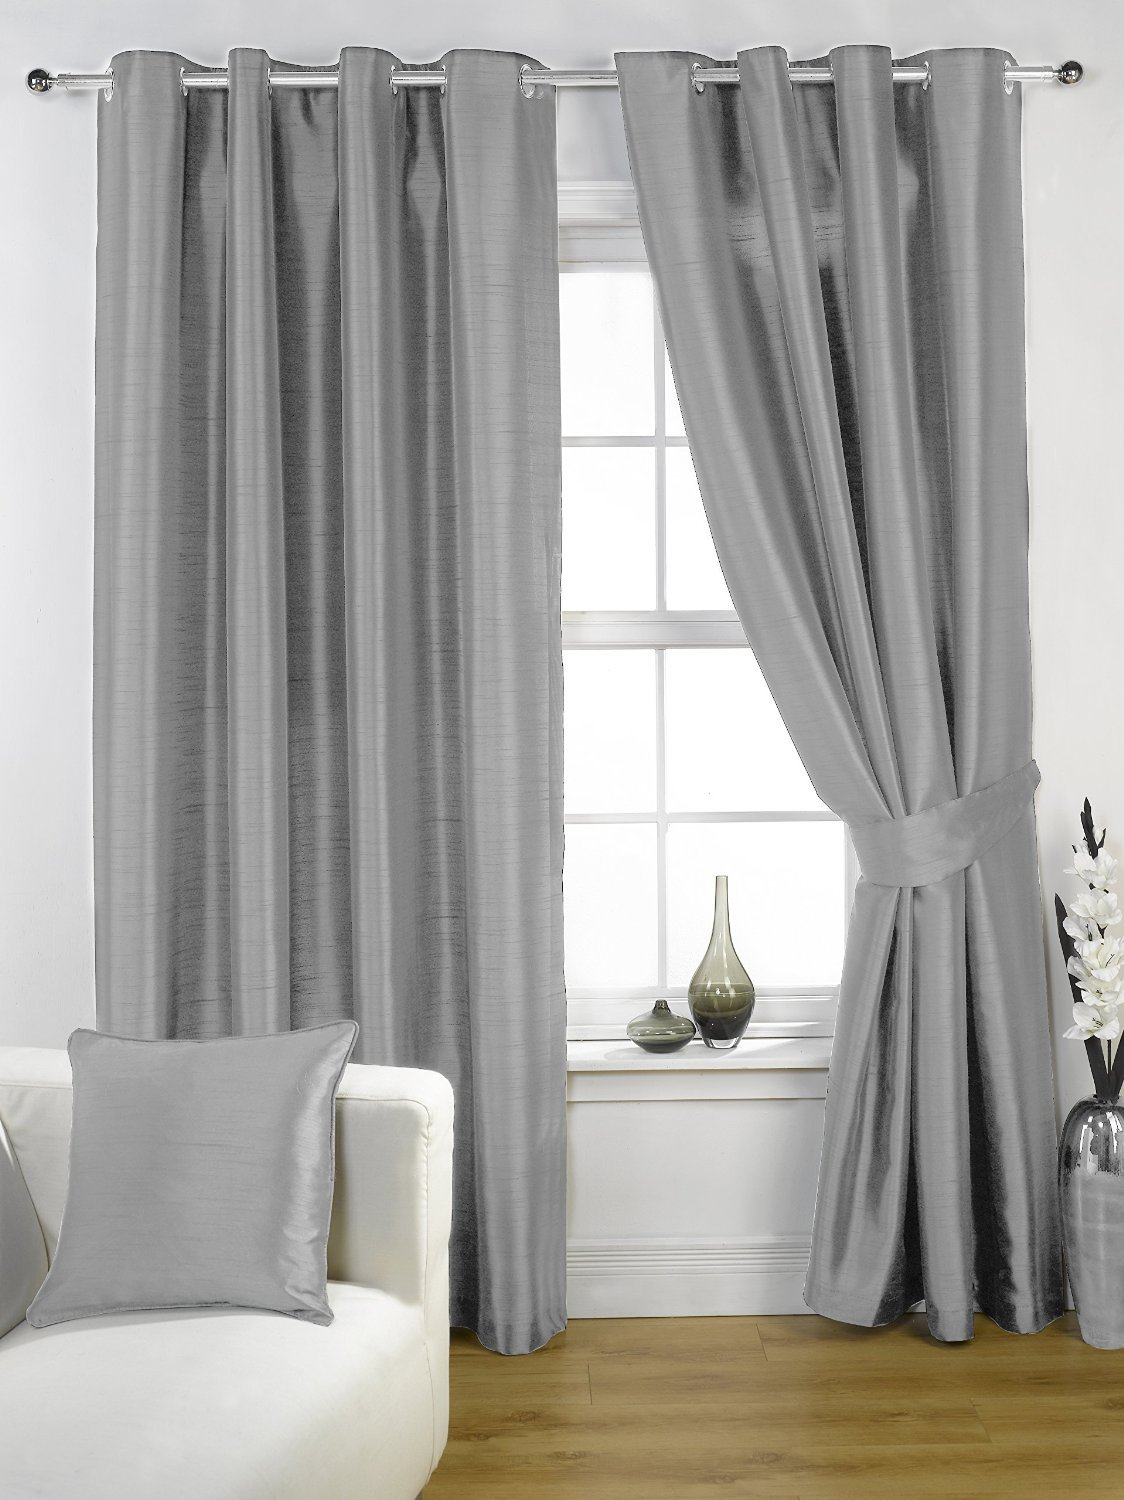 curtains by white inch pinch stylemaster com pleated drapes amazon splendor dp home kitchen